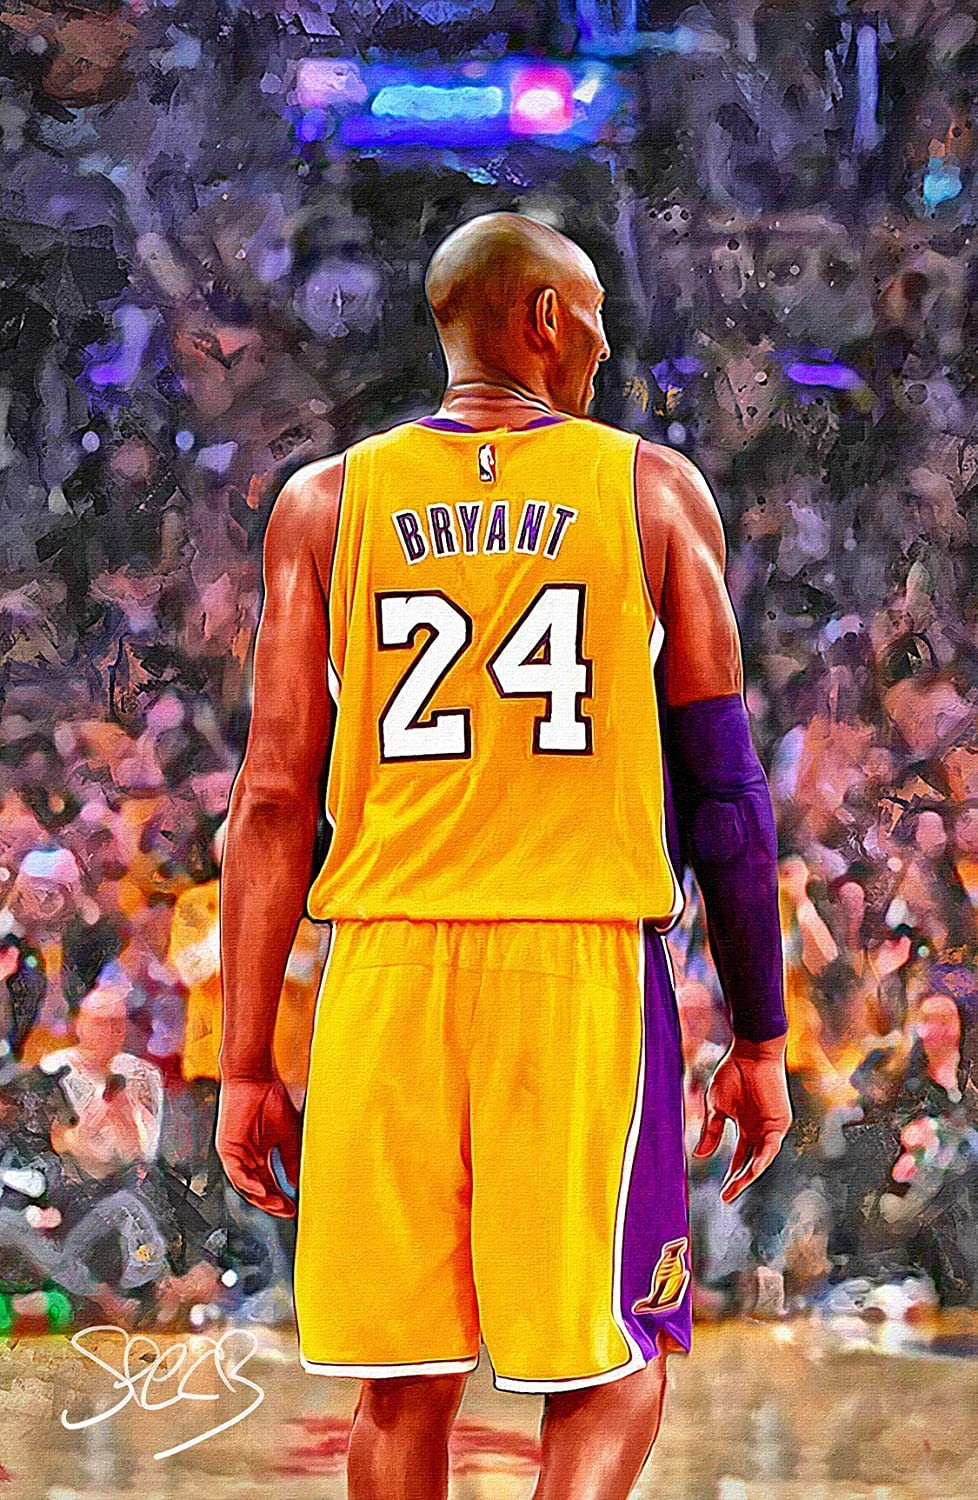 Artist Hand-signed Kobe Bryant Poster Print 11x17 Original Fine Art with #24 Jersey By Mark Spears